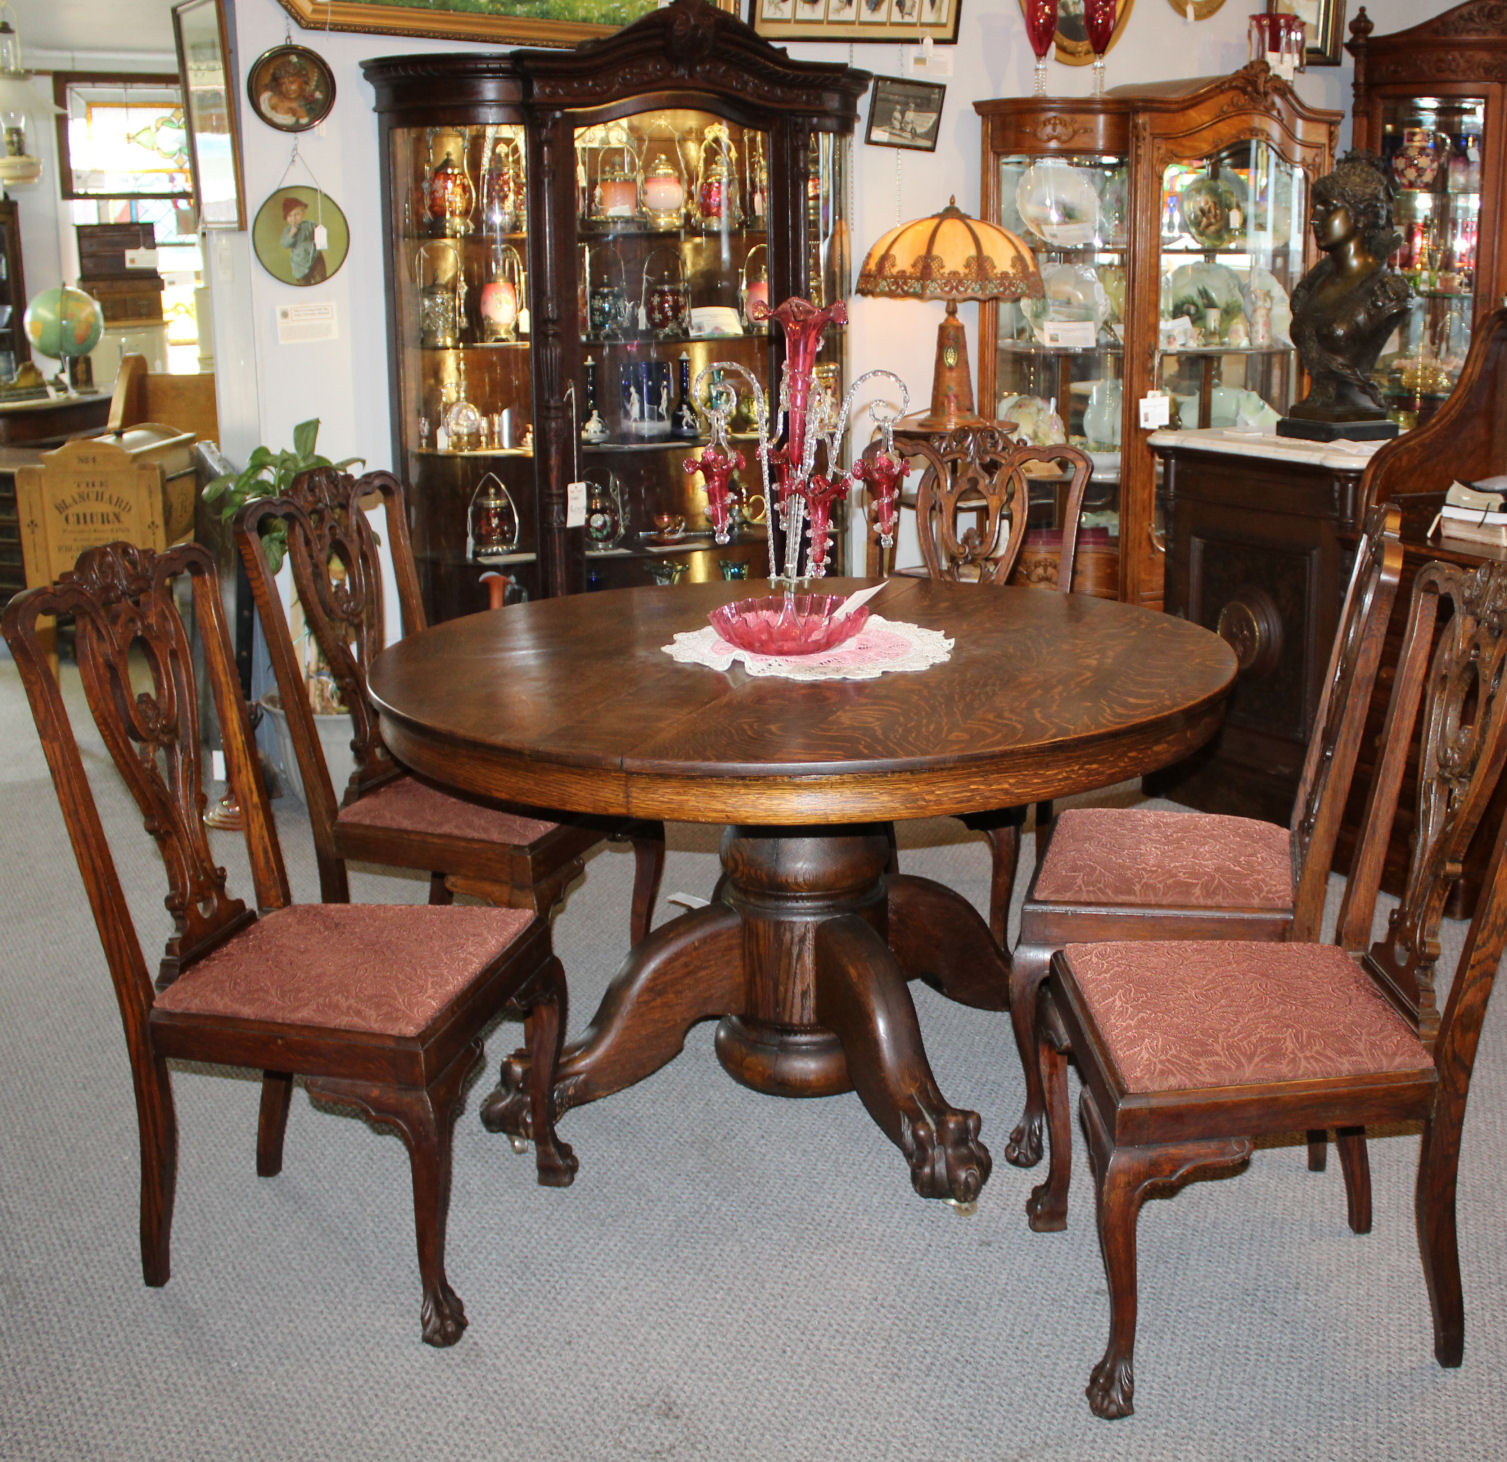 Antique Round Oak Dining Table Carved Claw Feet 5 Leaves Original Finish 54 Inches